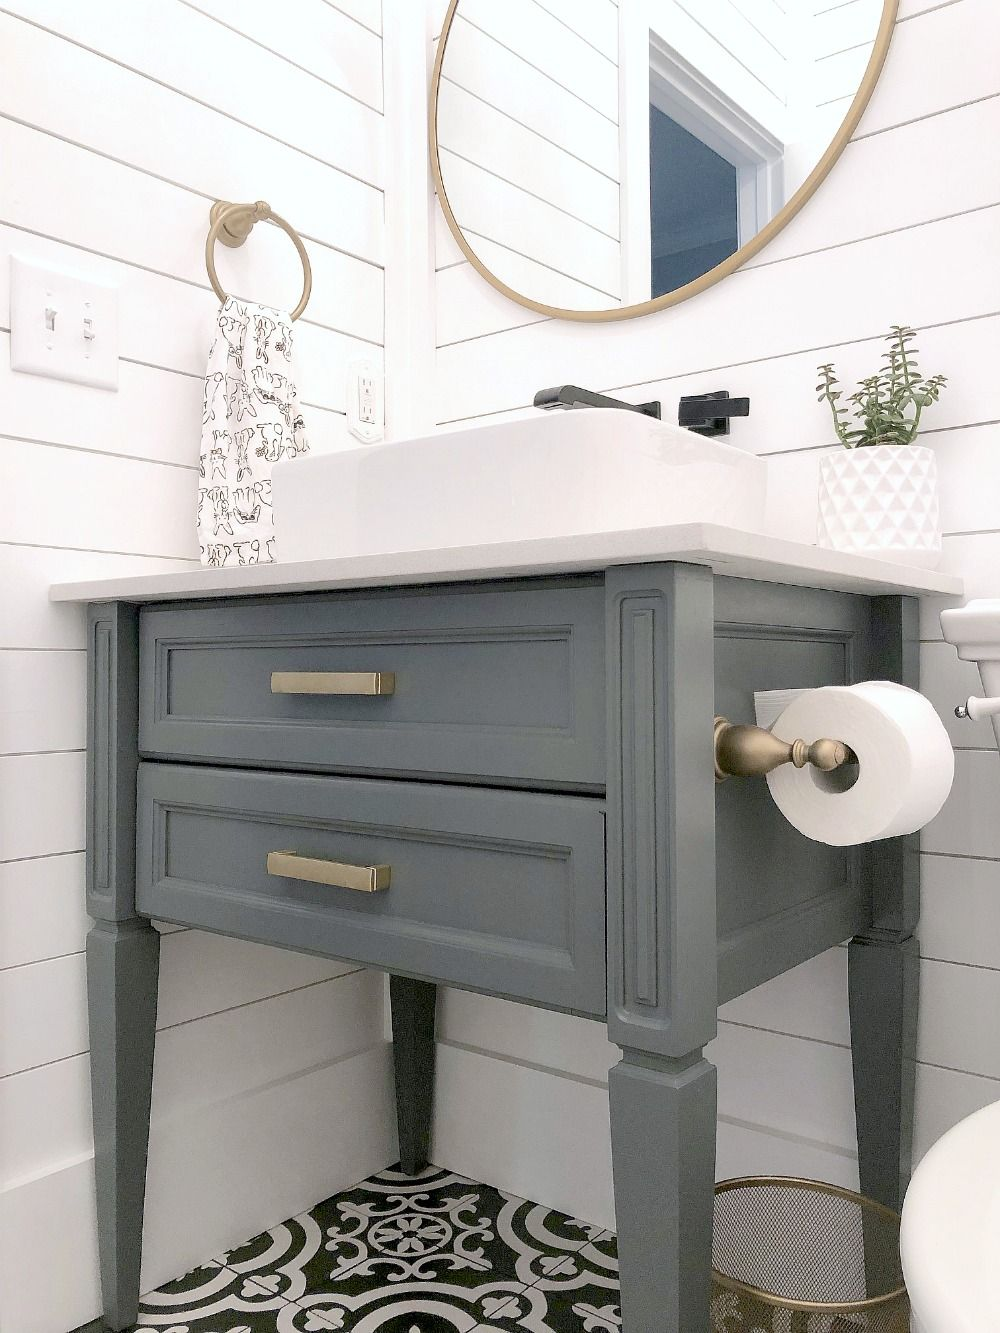 ideas on how to update a 15 year old bathroom vanity old on replacement countertops for bathroom vanity id=34501